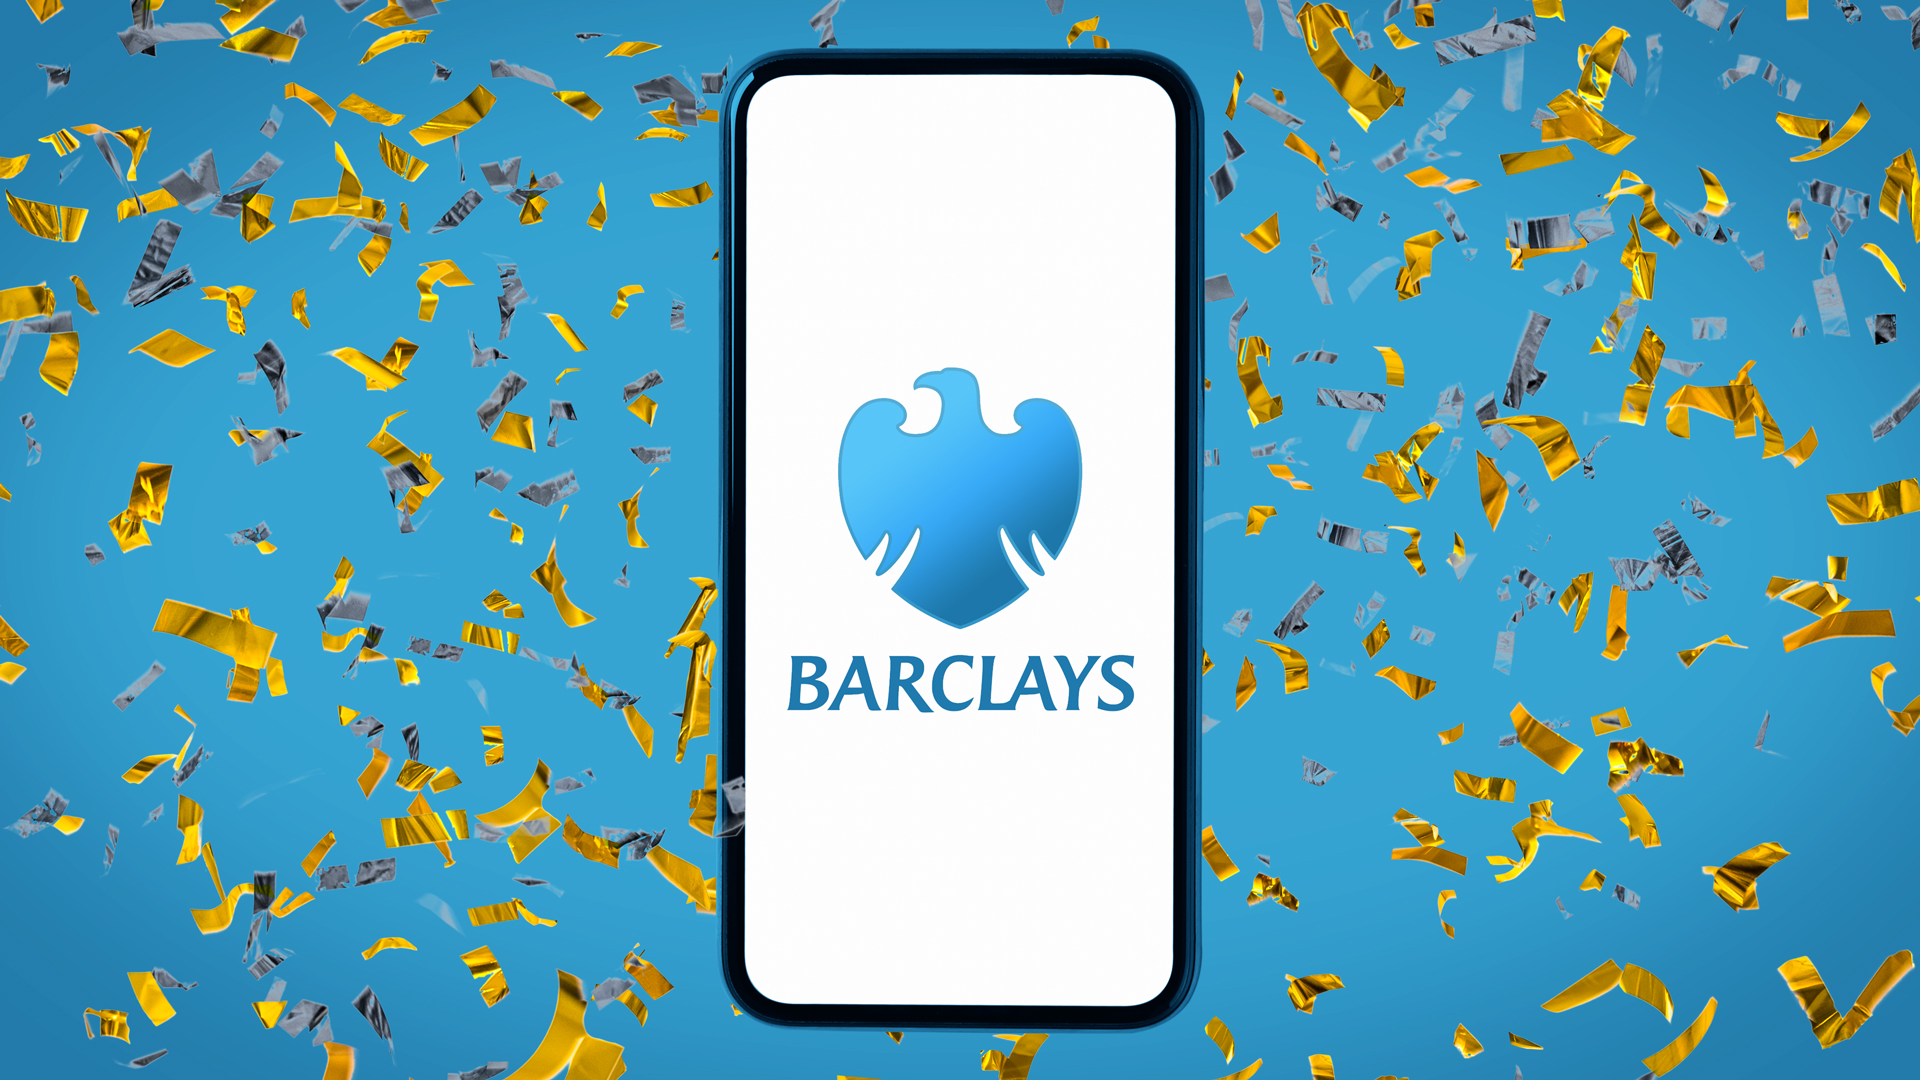 Barclays bank promotions